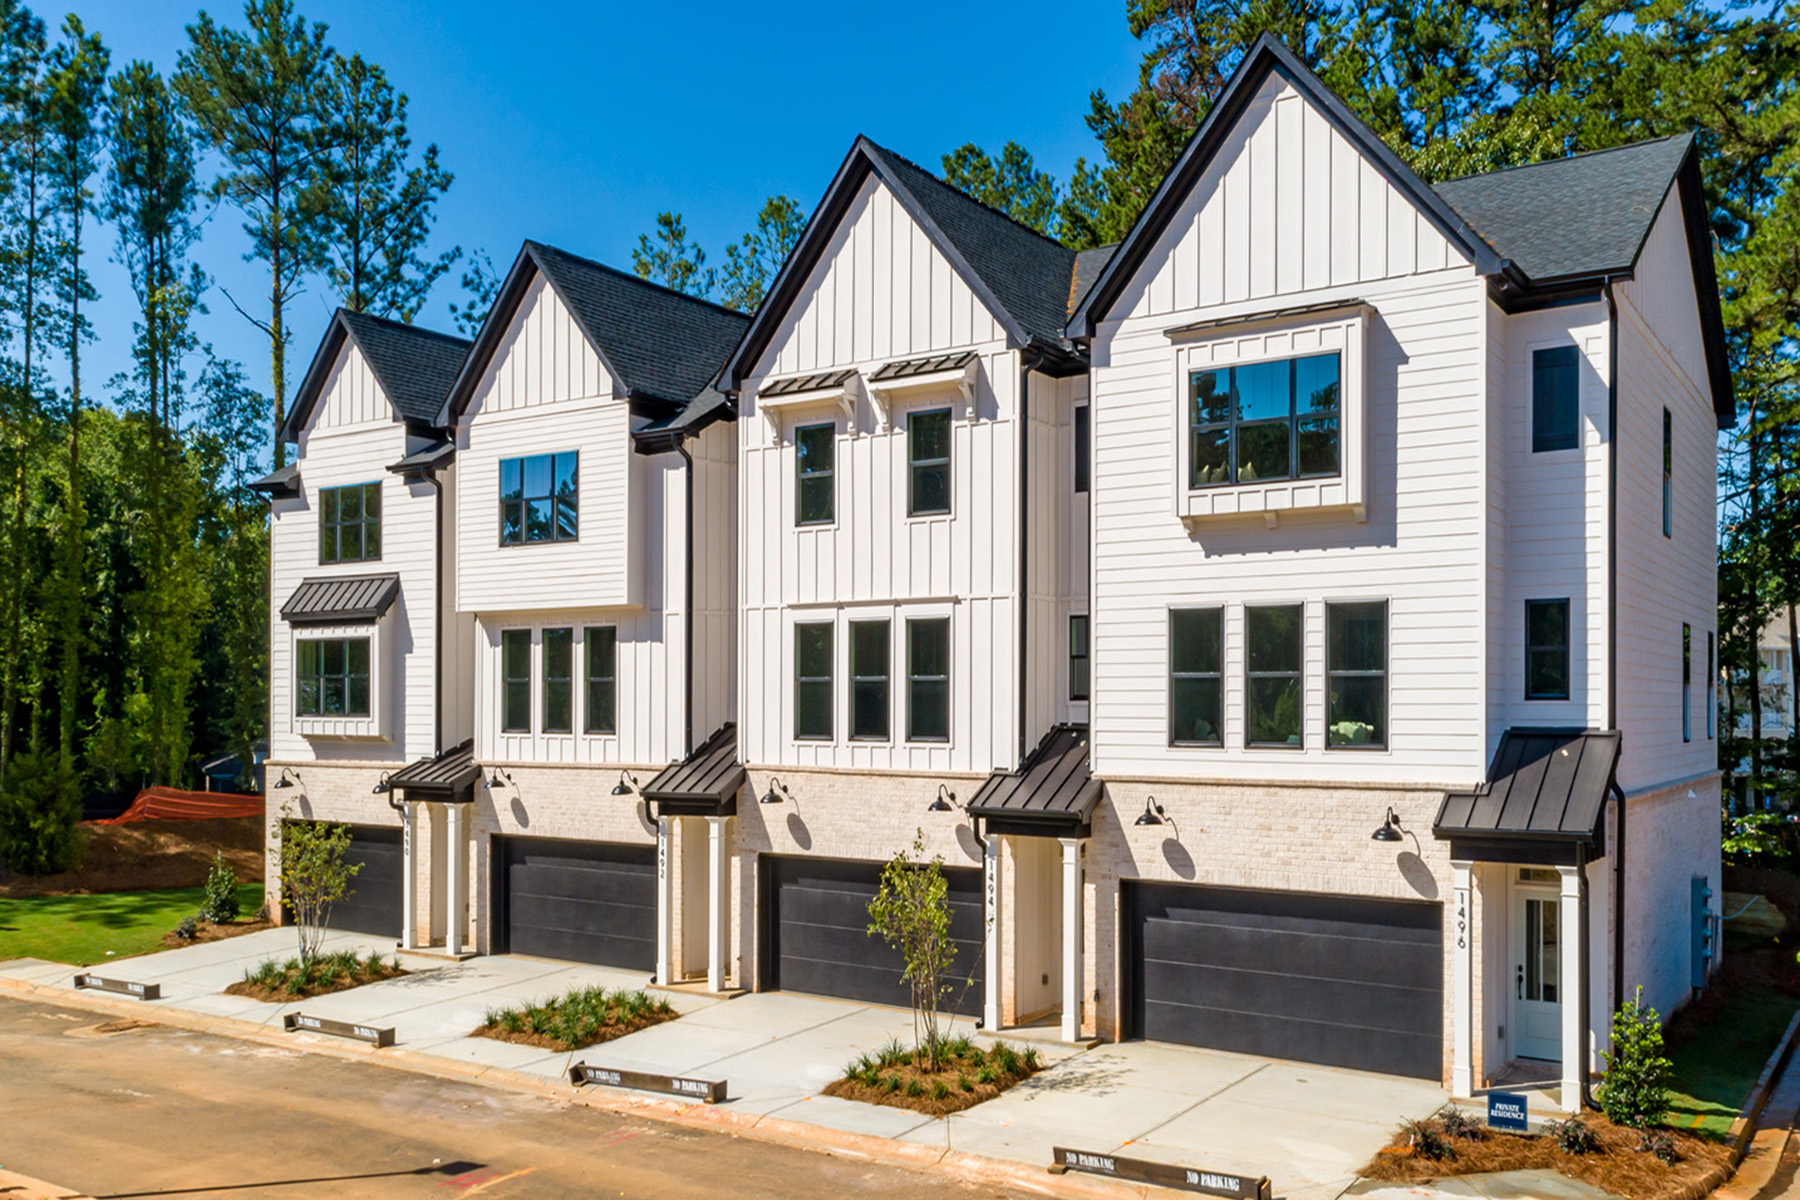 townhouses por un Venta en Beautiful New Townhome Located in Desirable Decatur 2729 Lawrenceville Highway No. 33, Decatur, Georgia 30033 Estados Unidos